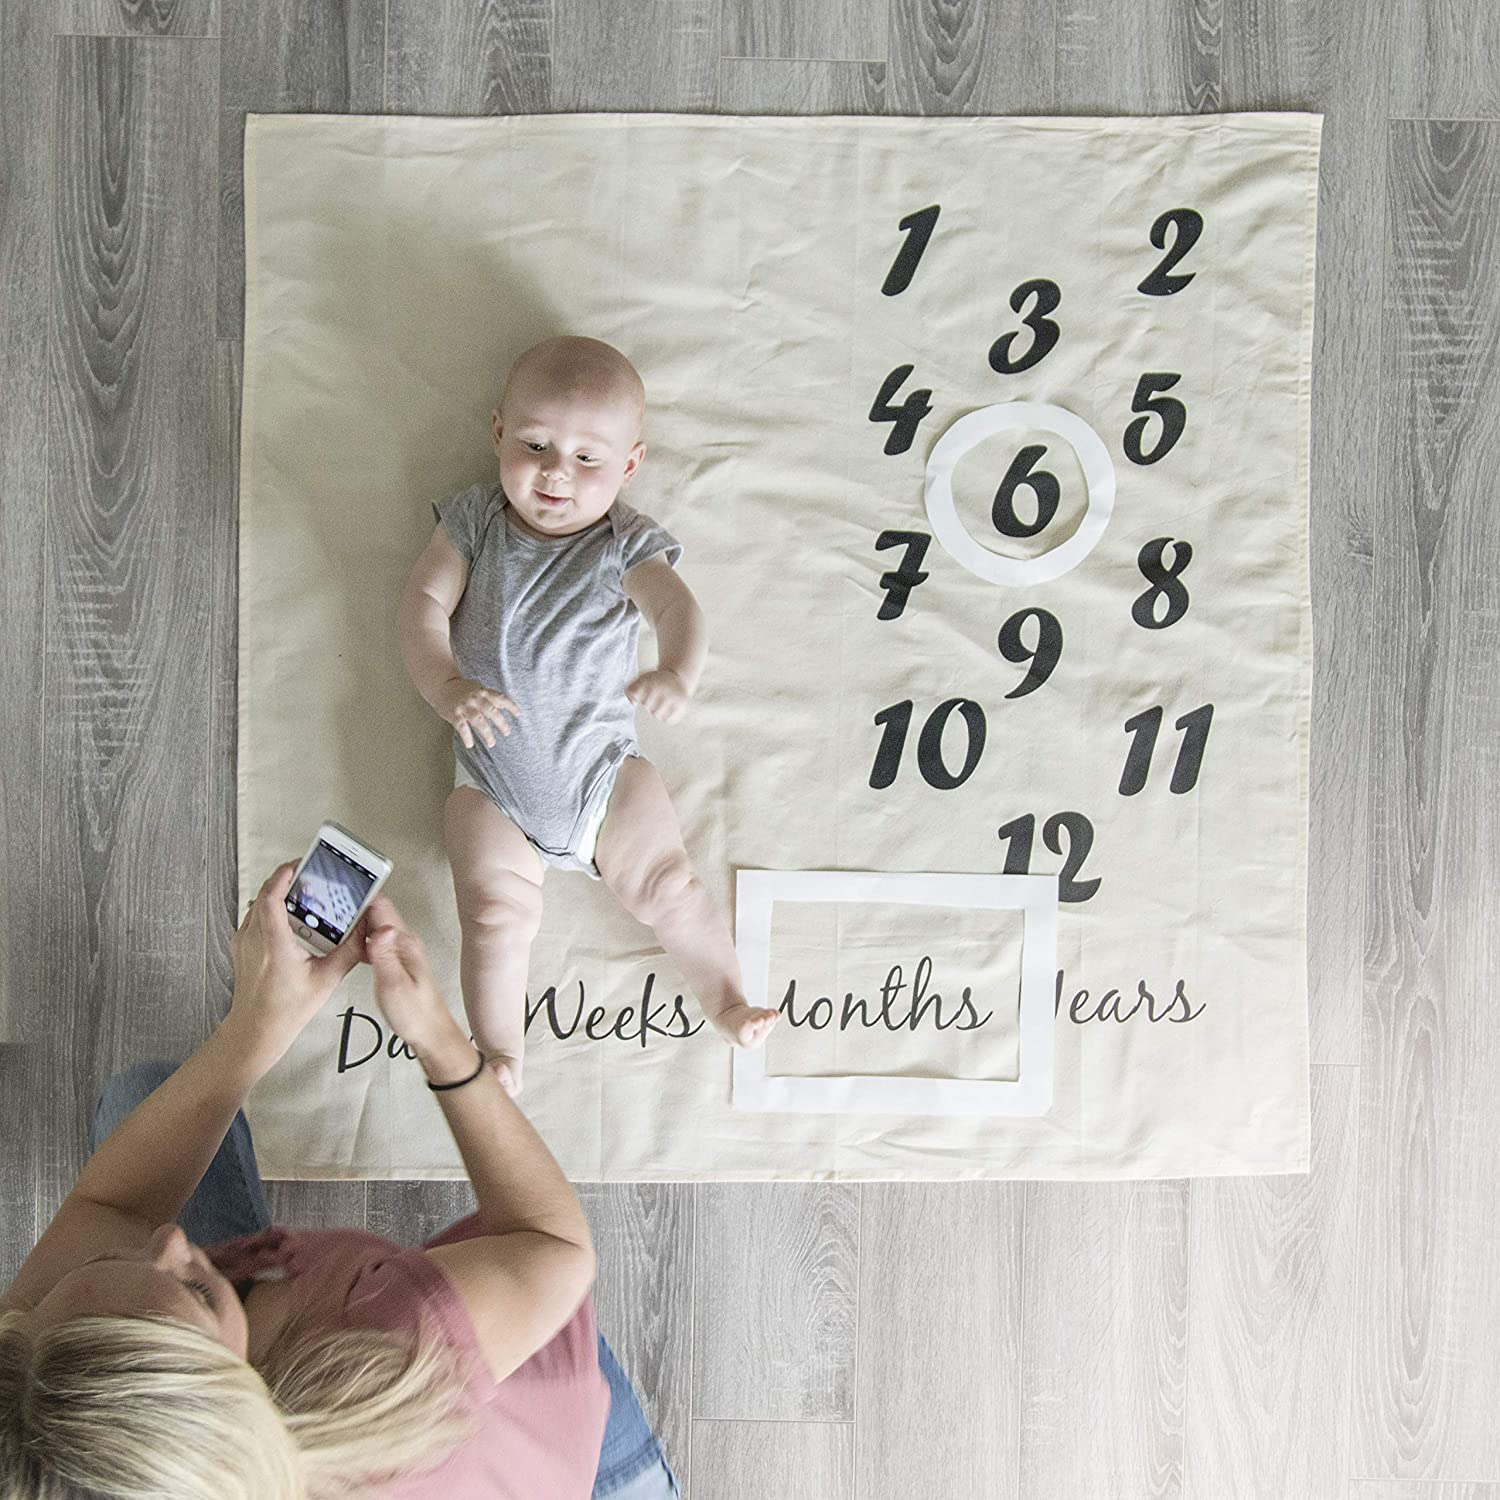 Baby Milestone Blanket and Newborn Milestones Stickers Monthly Age Infant Photography Props Blanket Beige Funny Sticker Cute Photo Accessories Prop Backdrop Cute Baby Shower Gft For Boy Girl